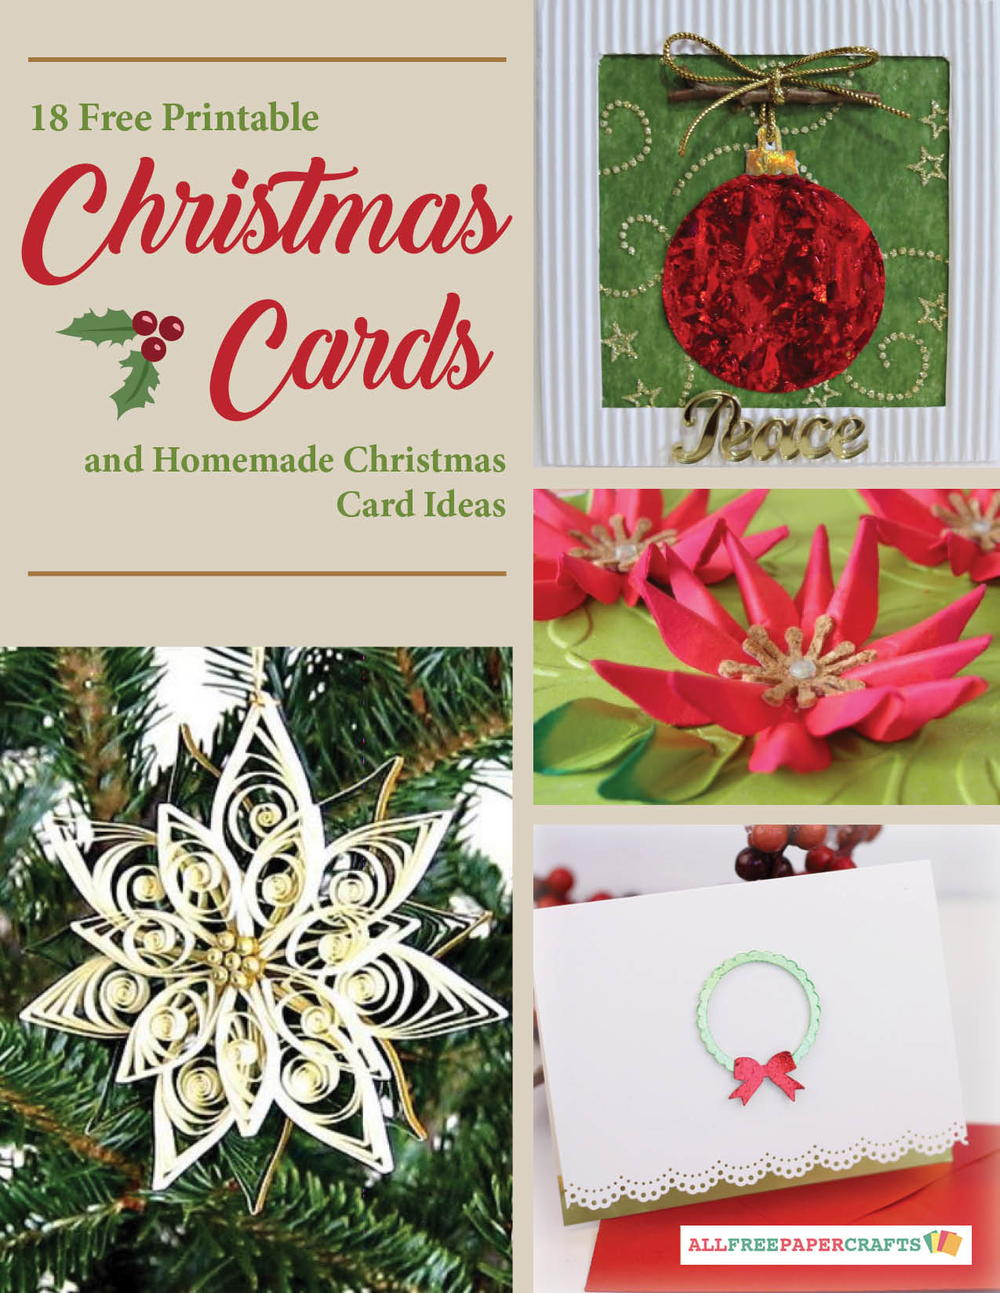 Ideas For Christmas Cards To Make.18 Free Printable Christmas Cards And Homemade Christmas